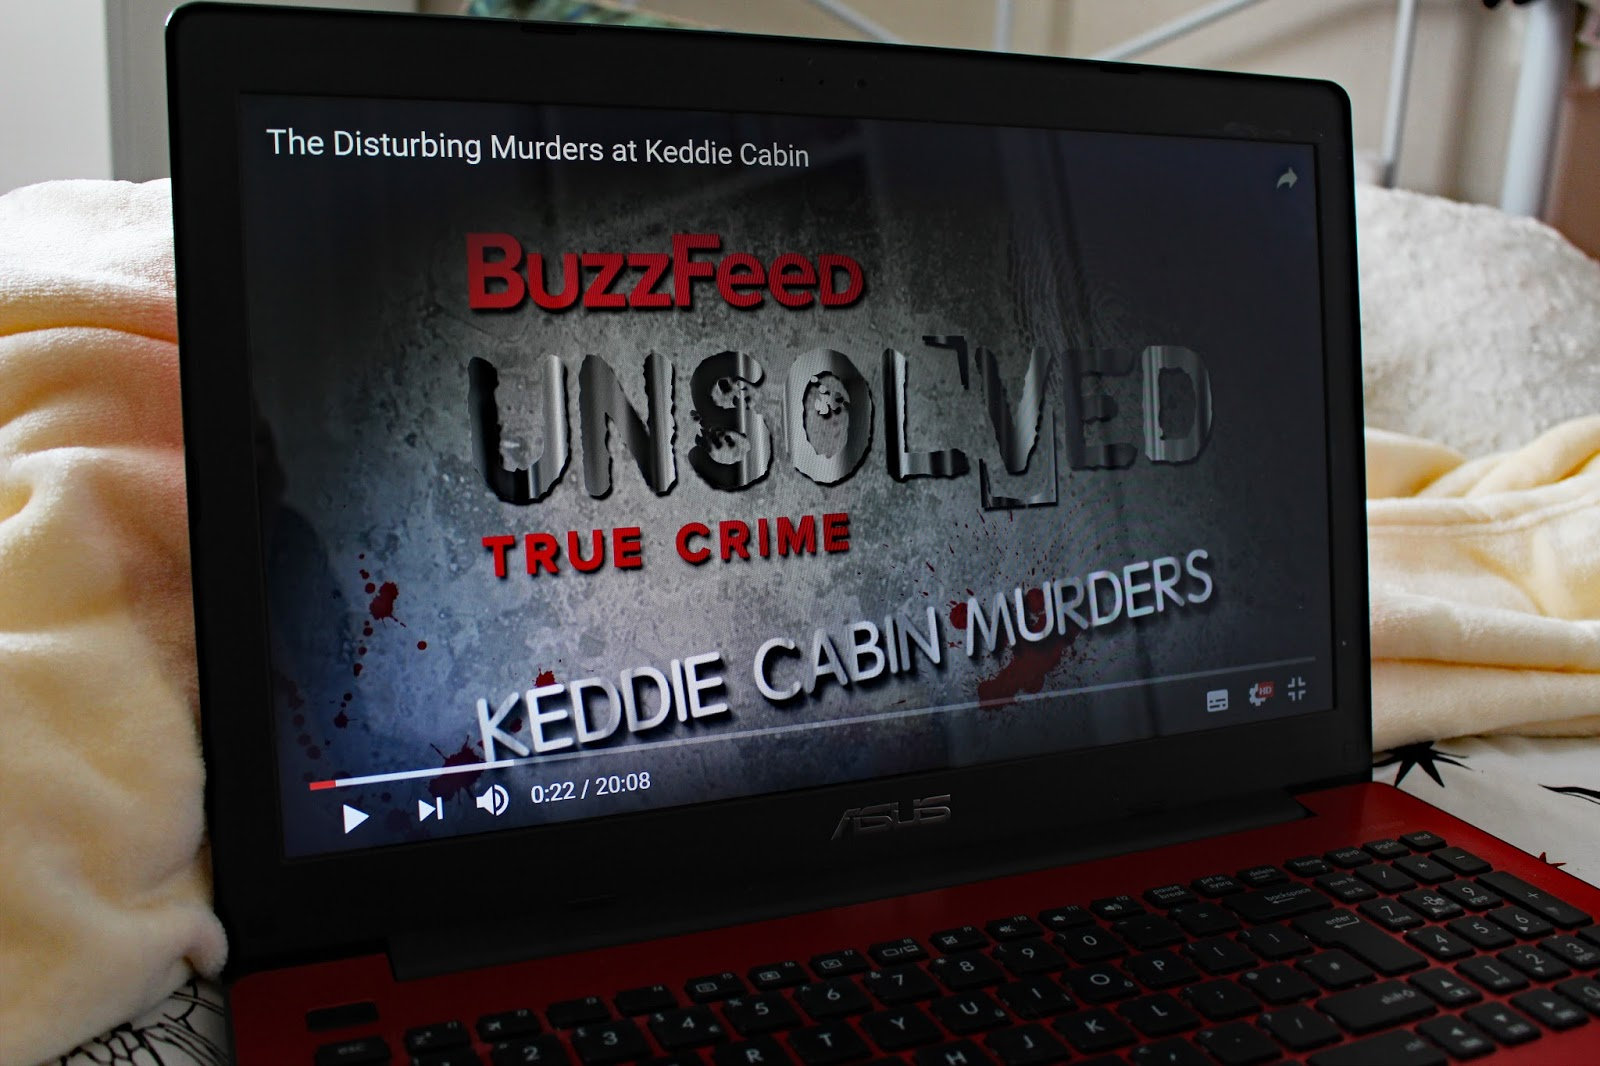 The Gruesome Keddie Cabin Murders  buzz feed unsolved murderers